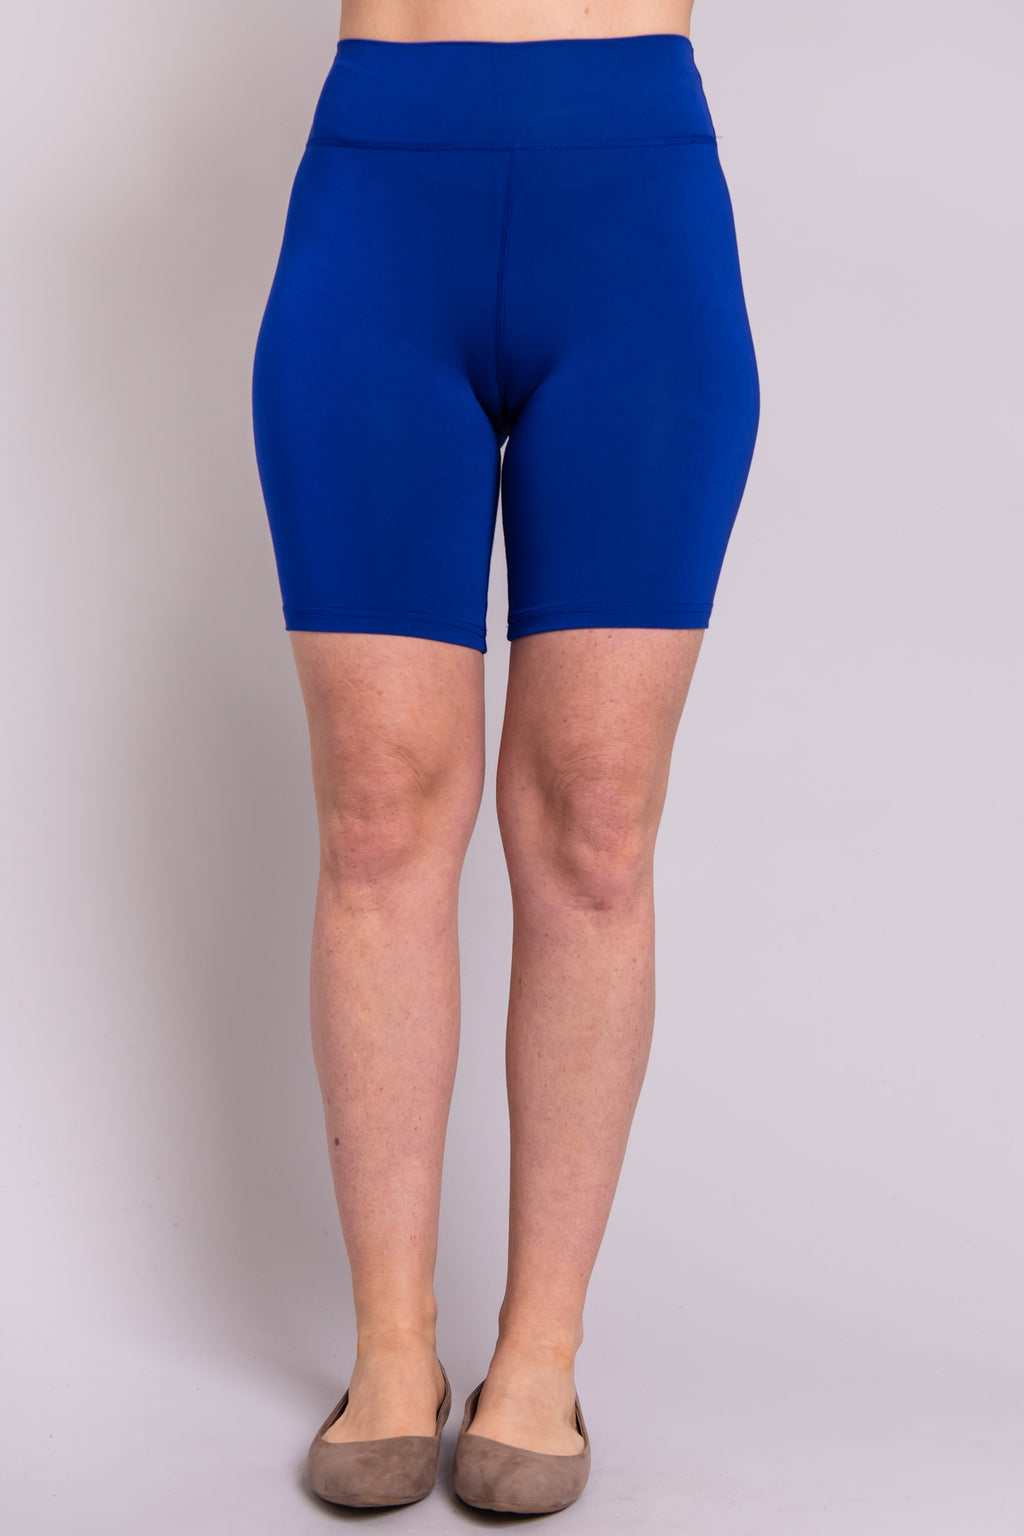 Hallie Undershorts, Violet - Blue Sky Clothing Co